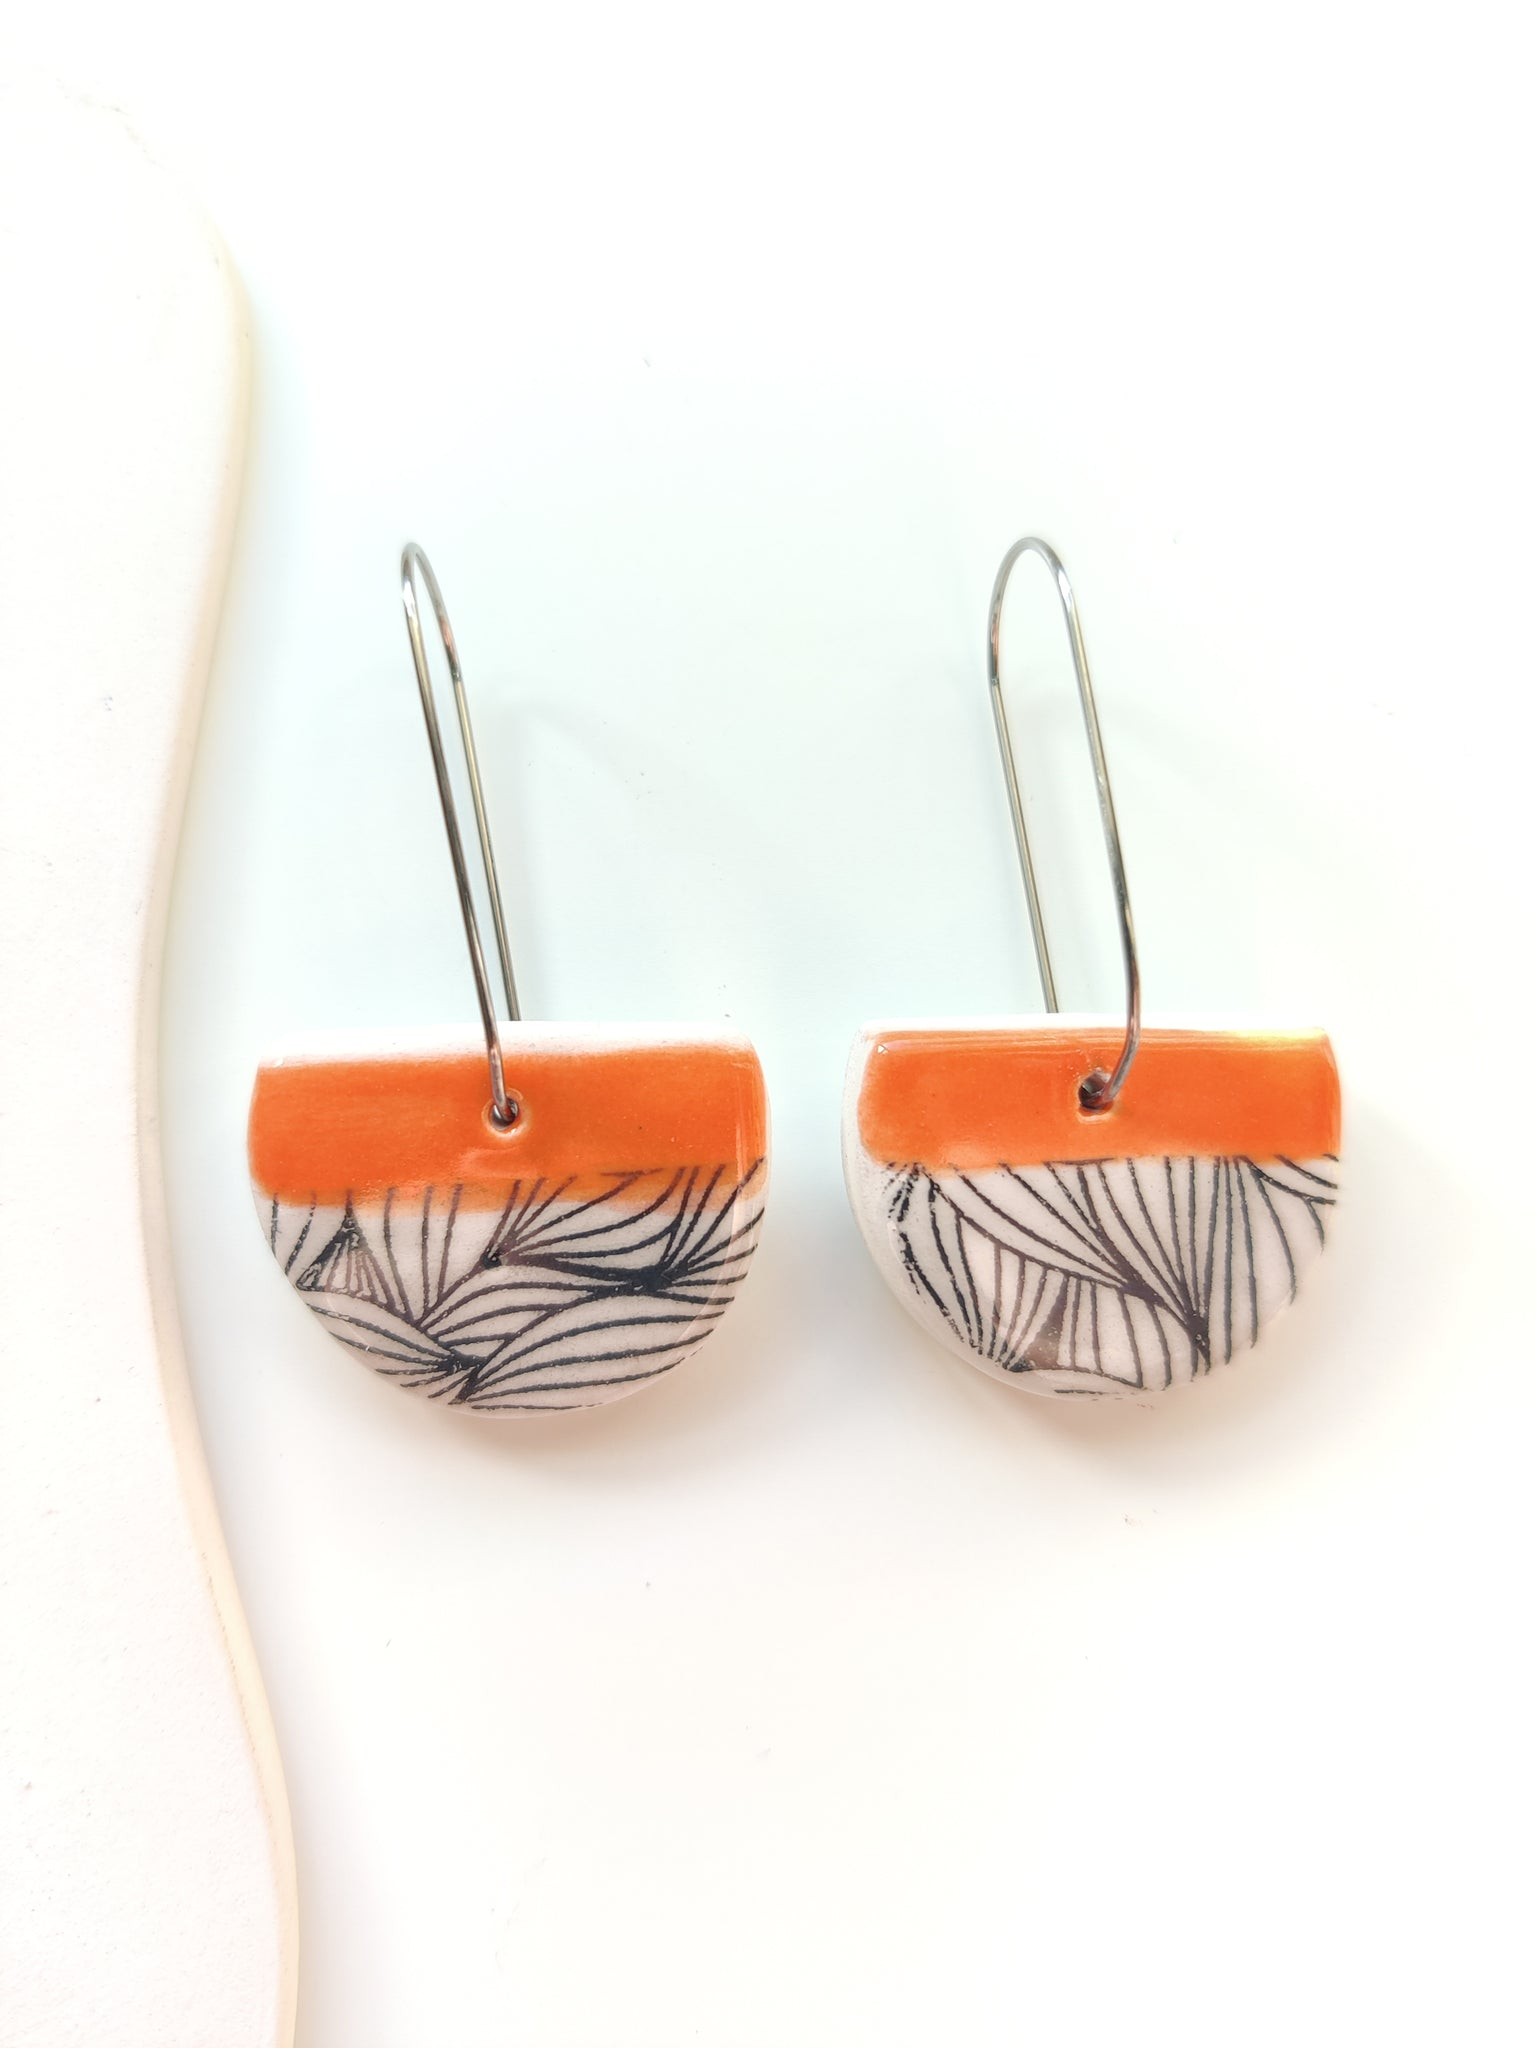 Cut Circle Drop Earring - Pumpkin Orange & Black Print